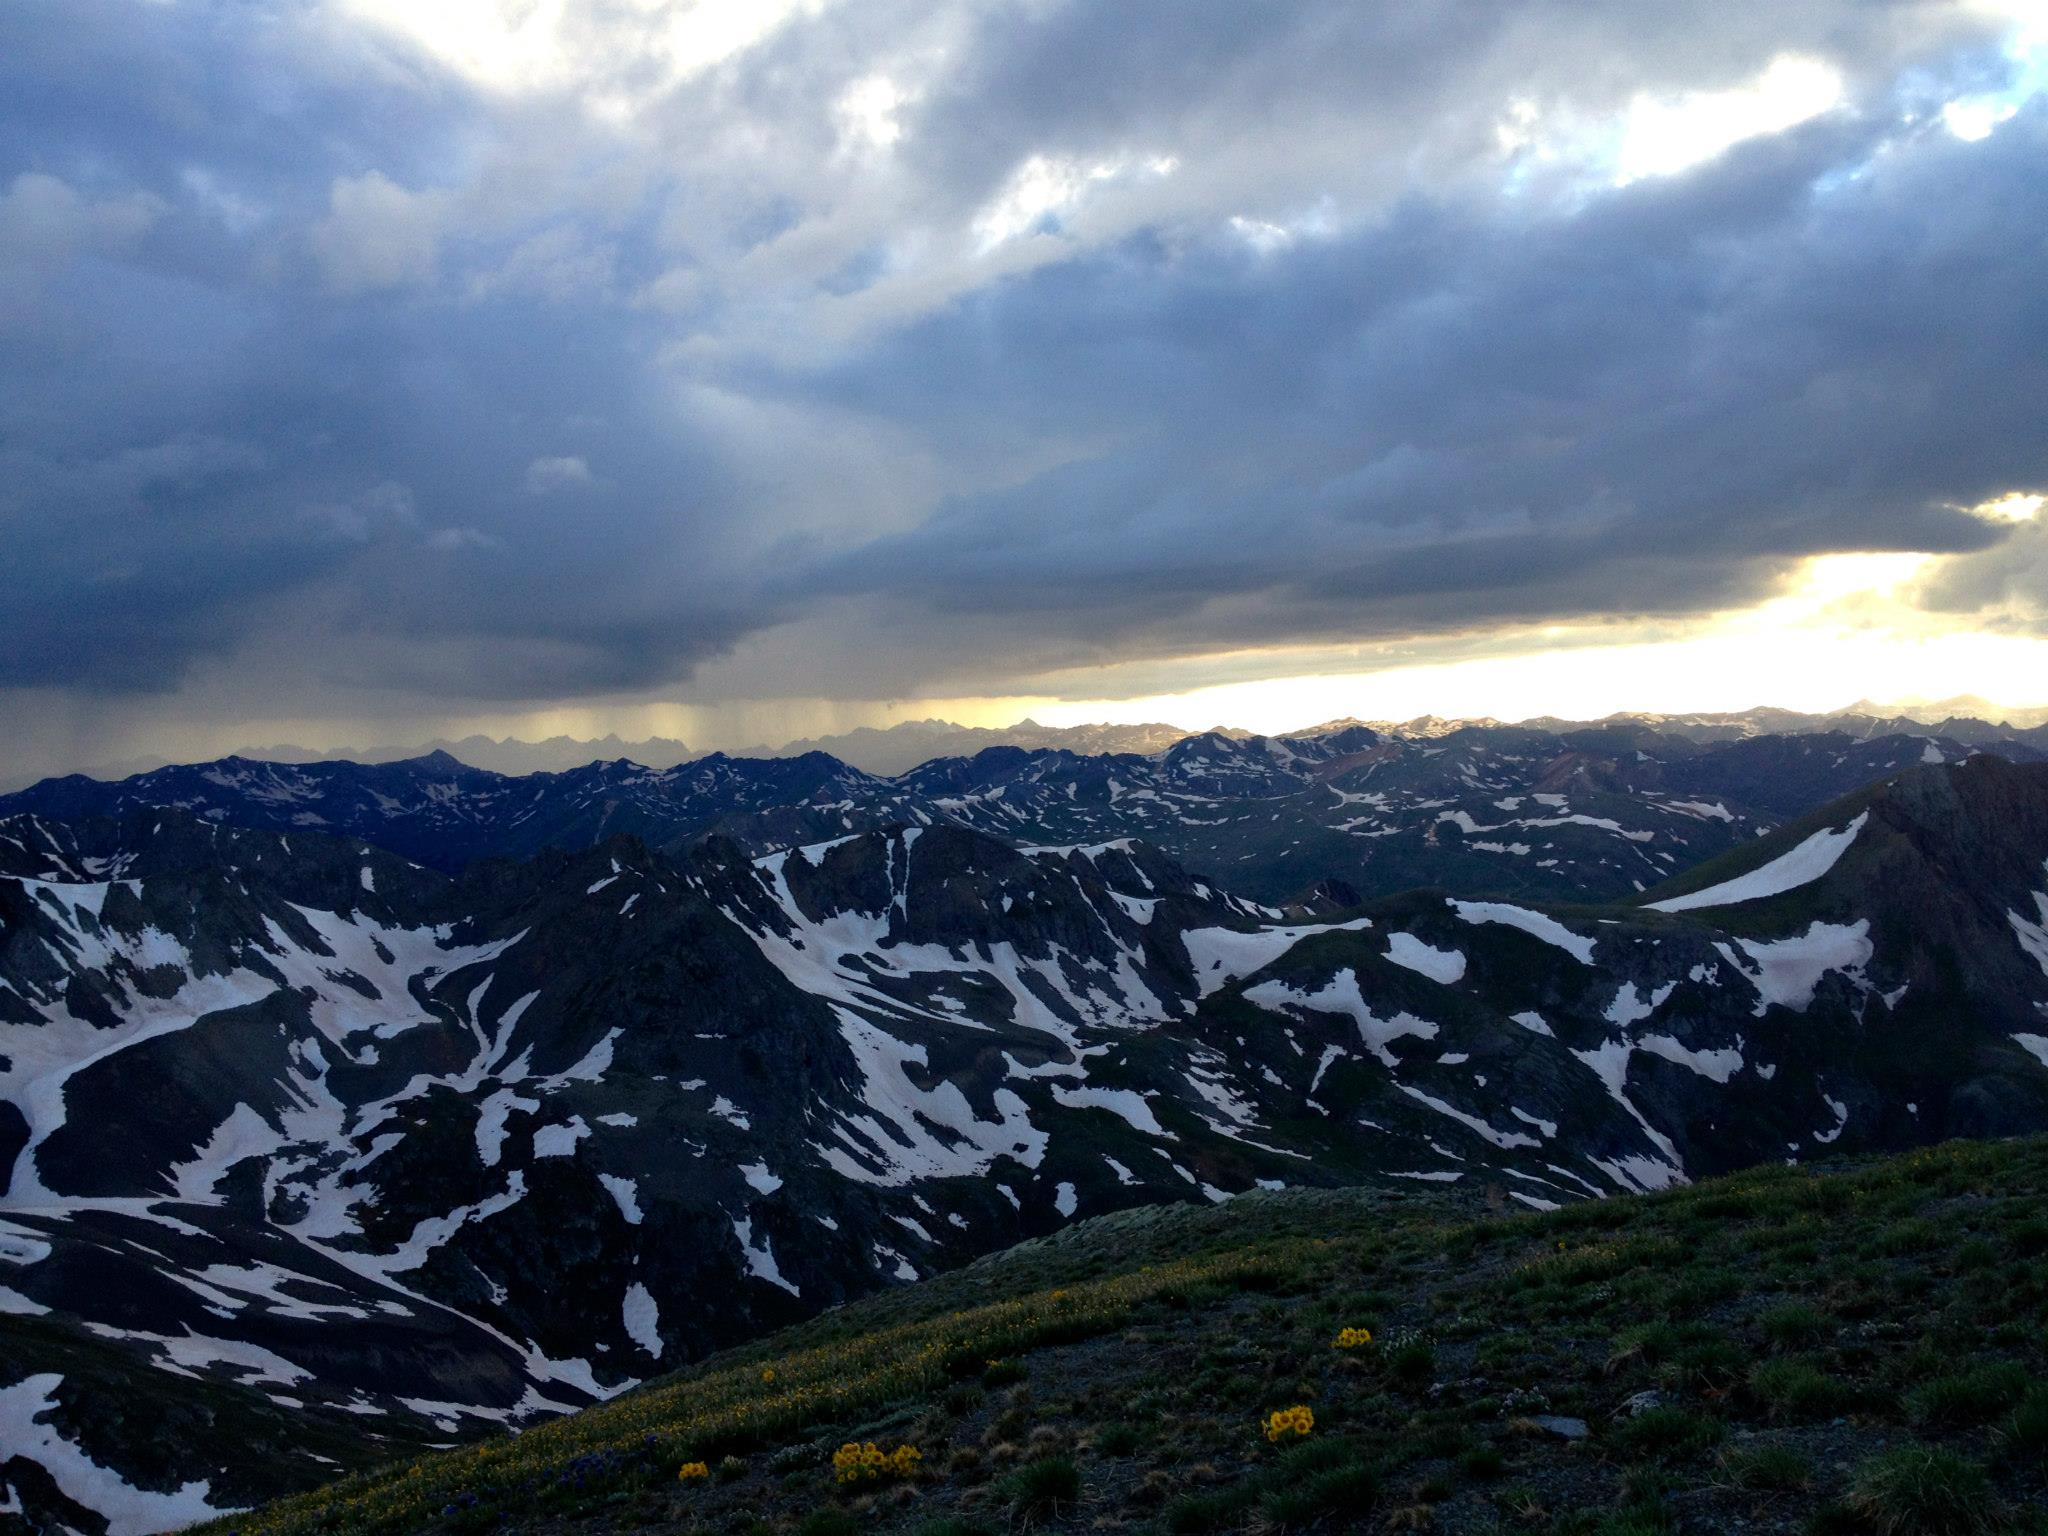 A view from the top of Handies Peak at sunset courtesy iRunFar's Facebook album, by Ryan Krol & Liz Sasserman